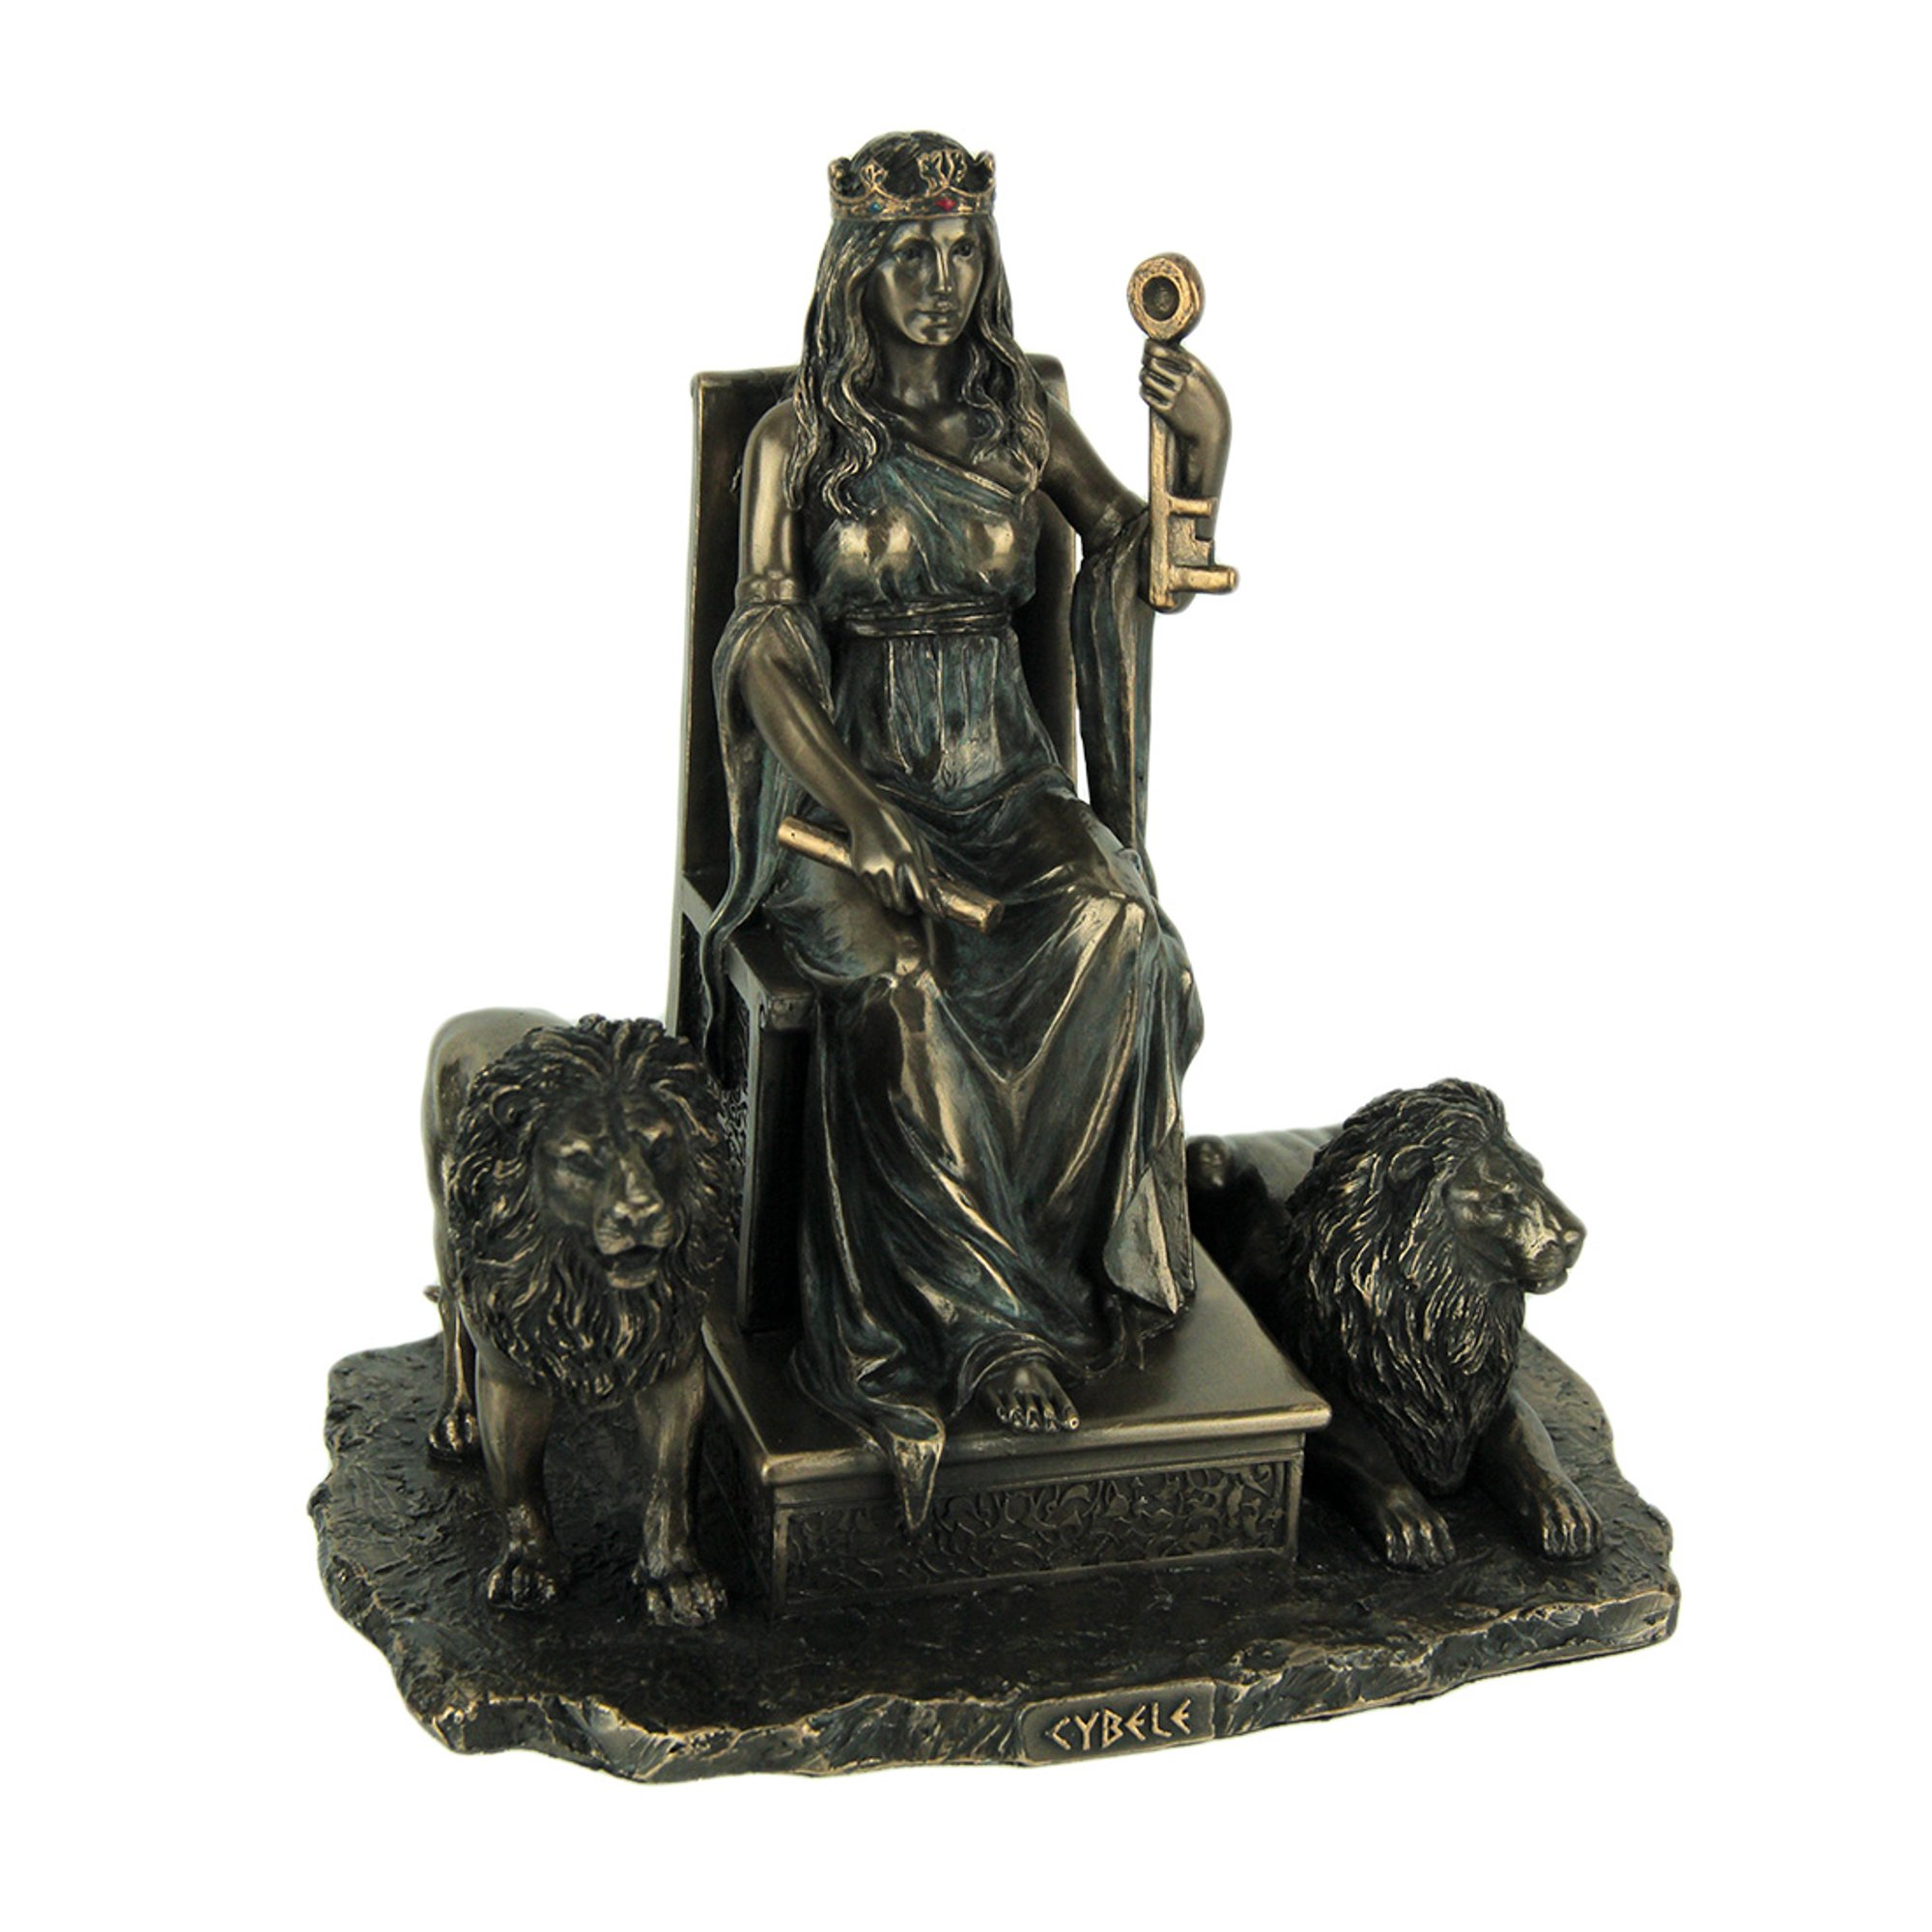 Ancient Gaia Statue cybele ancient greek mother goddess bronze finished statue